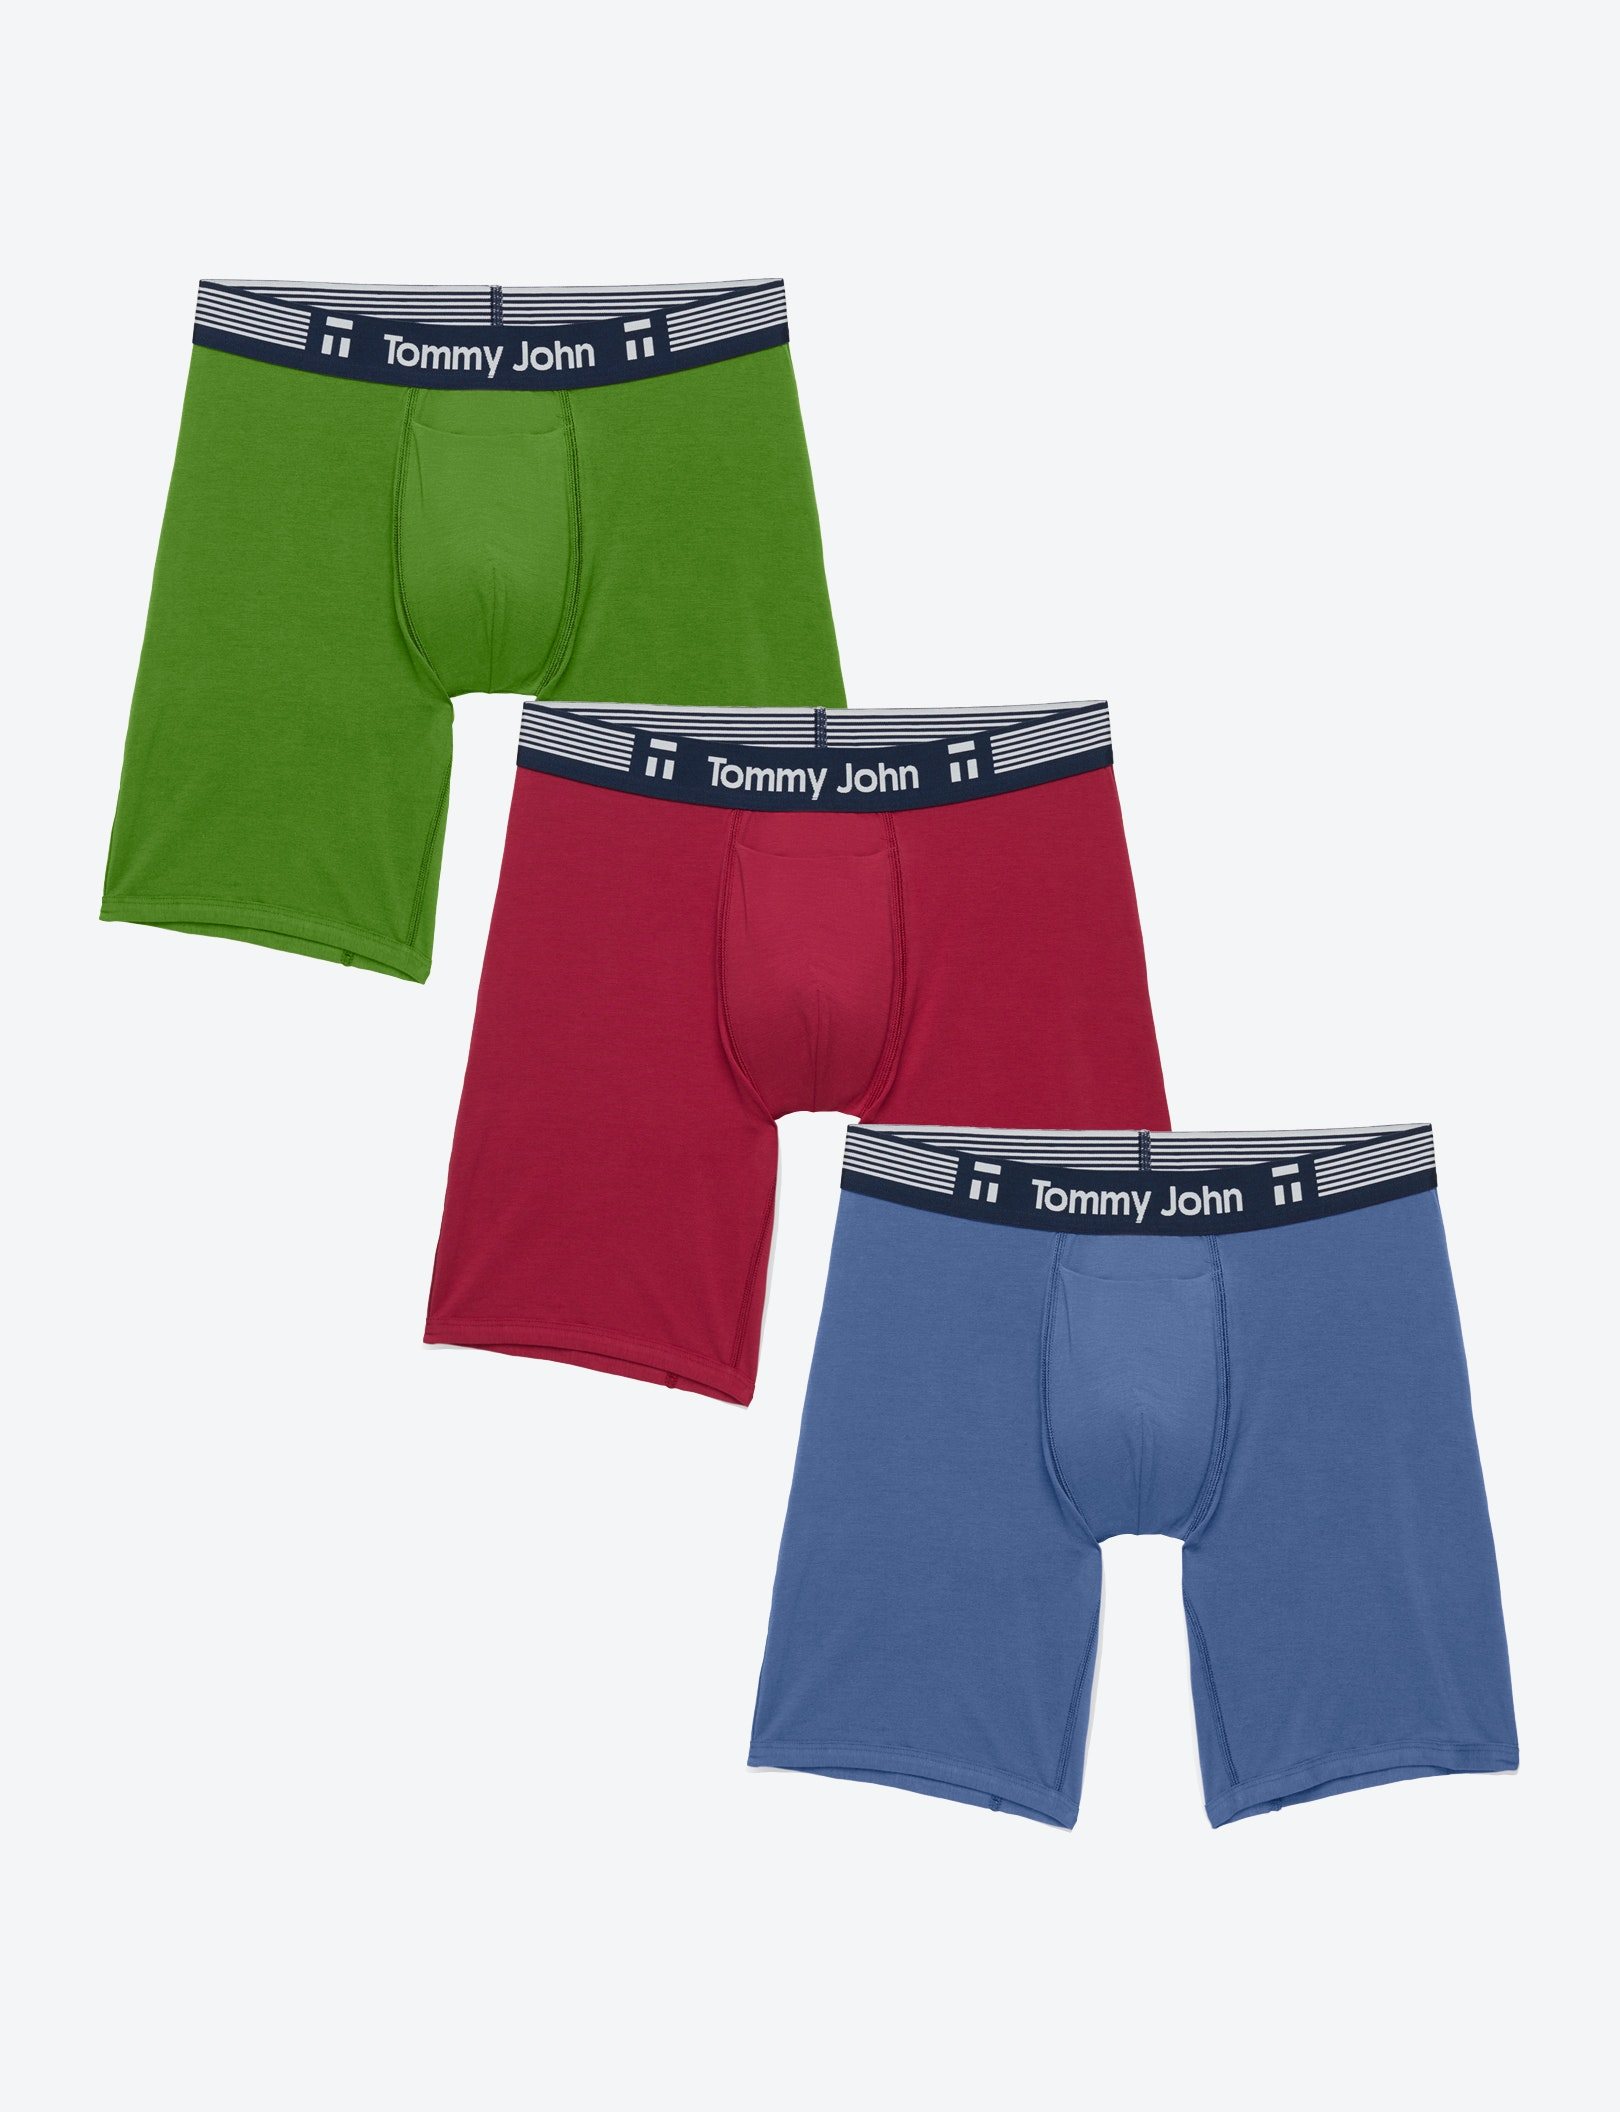 Image of Cool Cotton Armory Boxer Brief 3 Pack